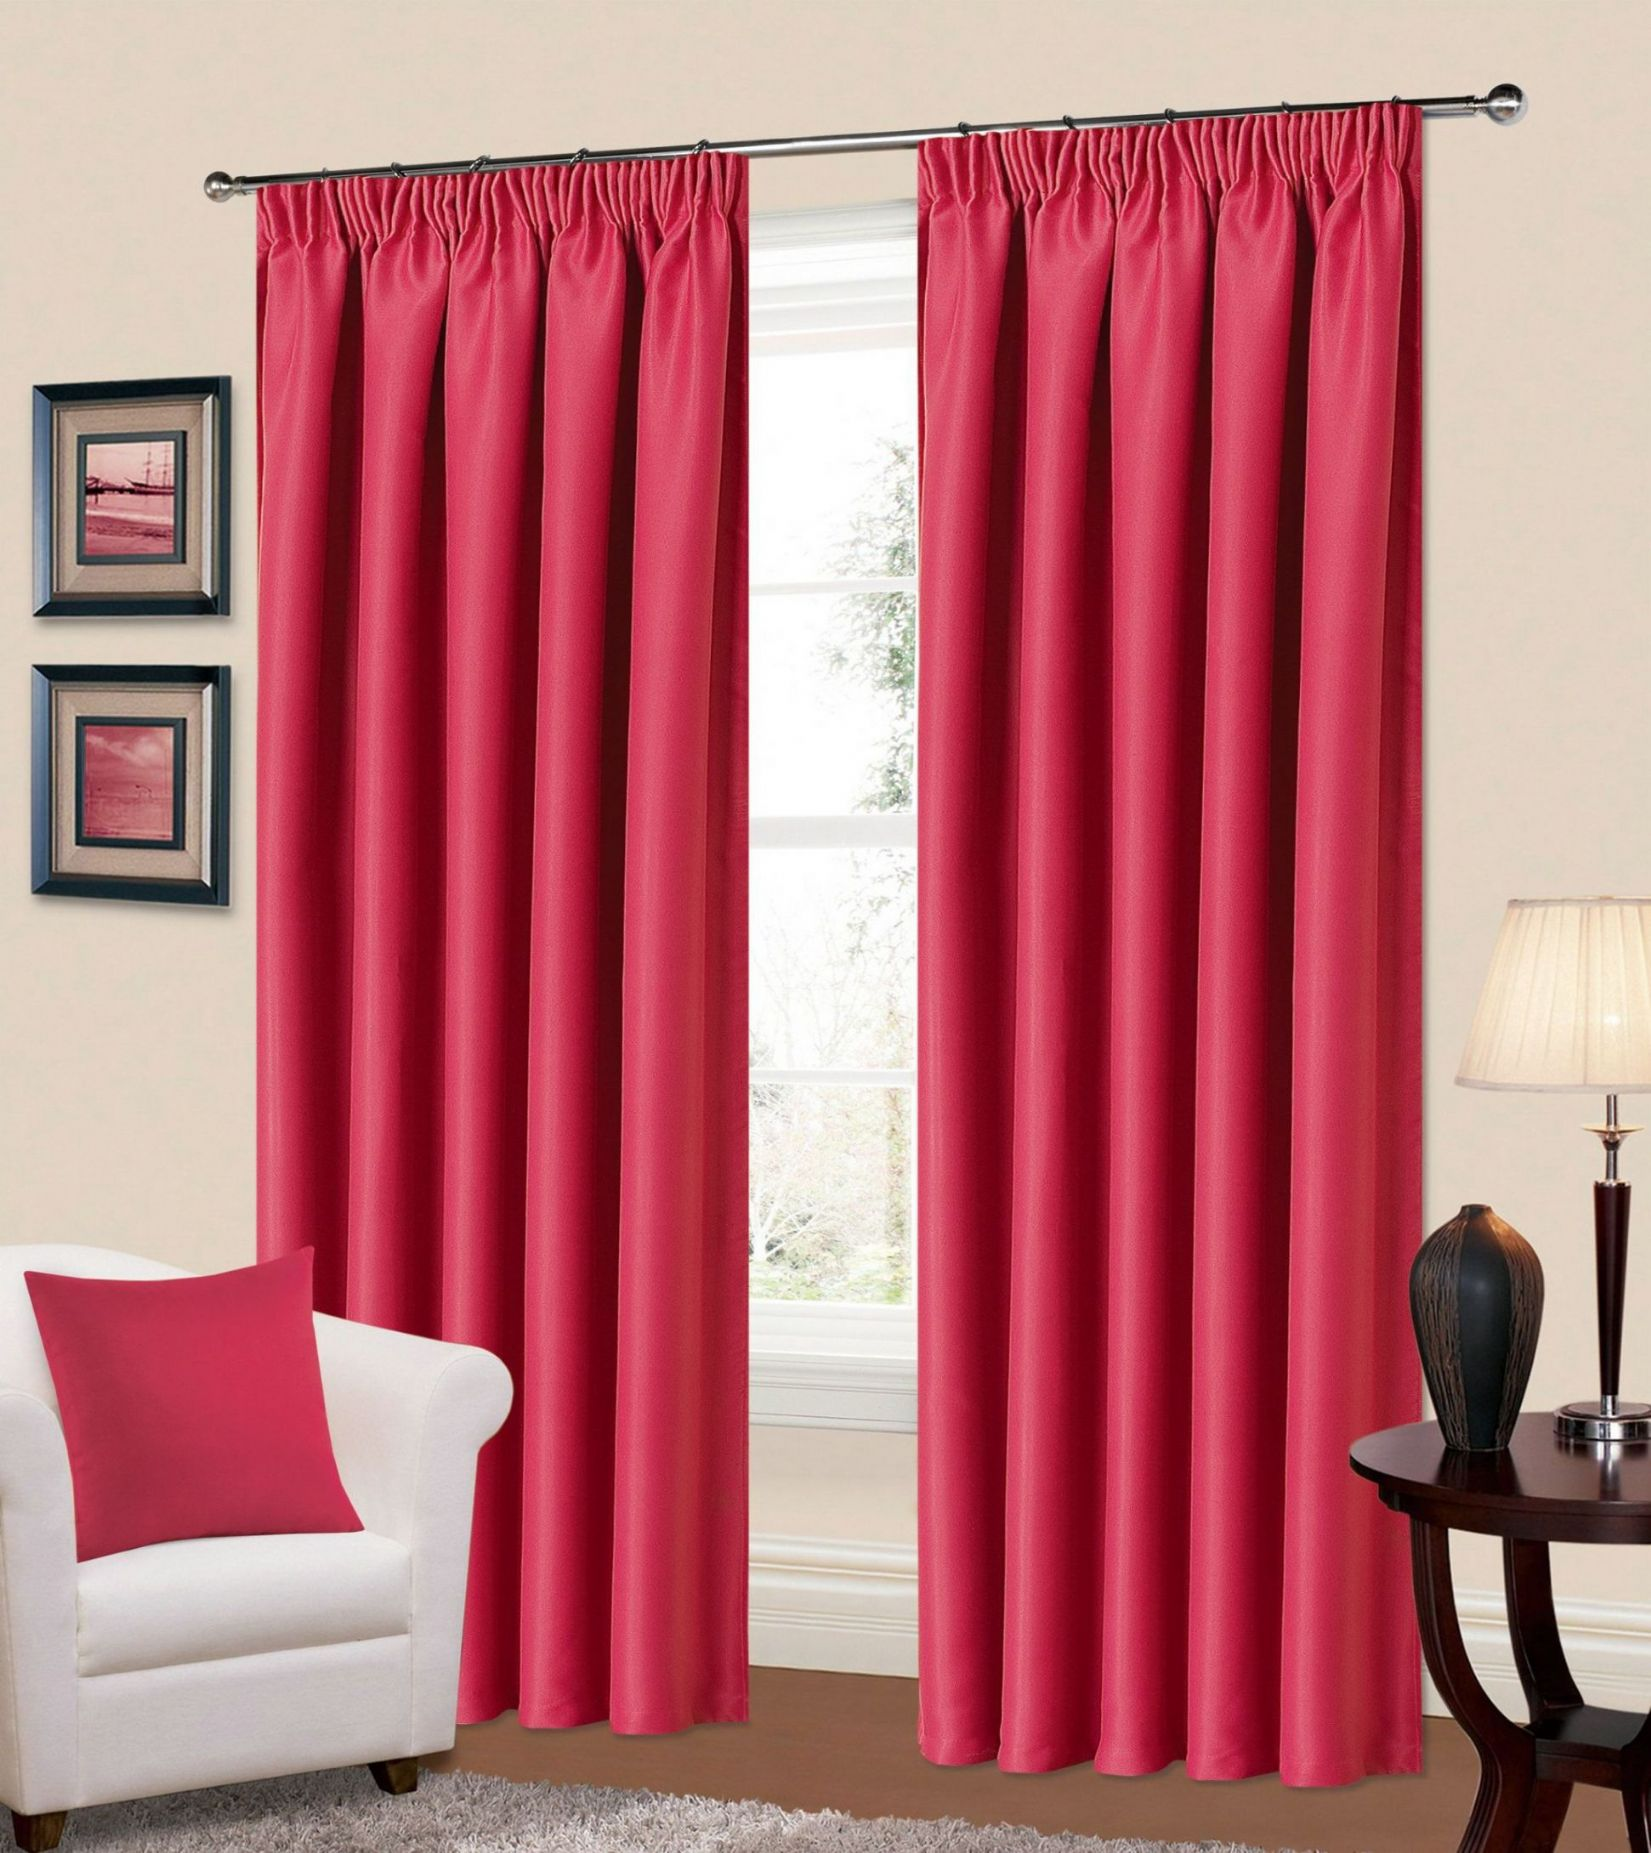 plain-fuschia-pink-colour-thermal-blackout-readymade-bedroom-livingroom-curtains-pencil-pleat-8649-p